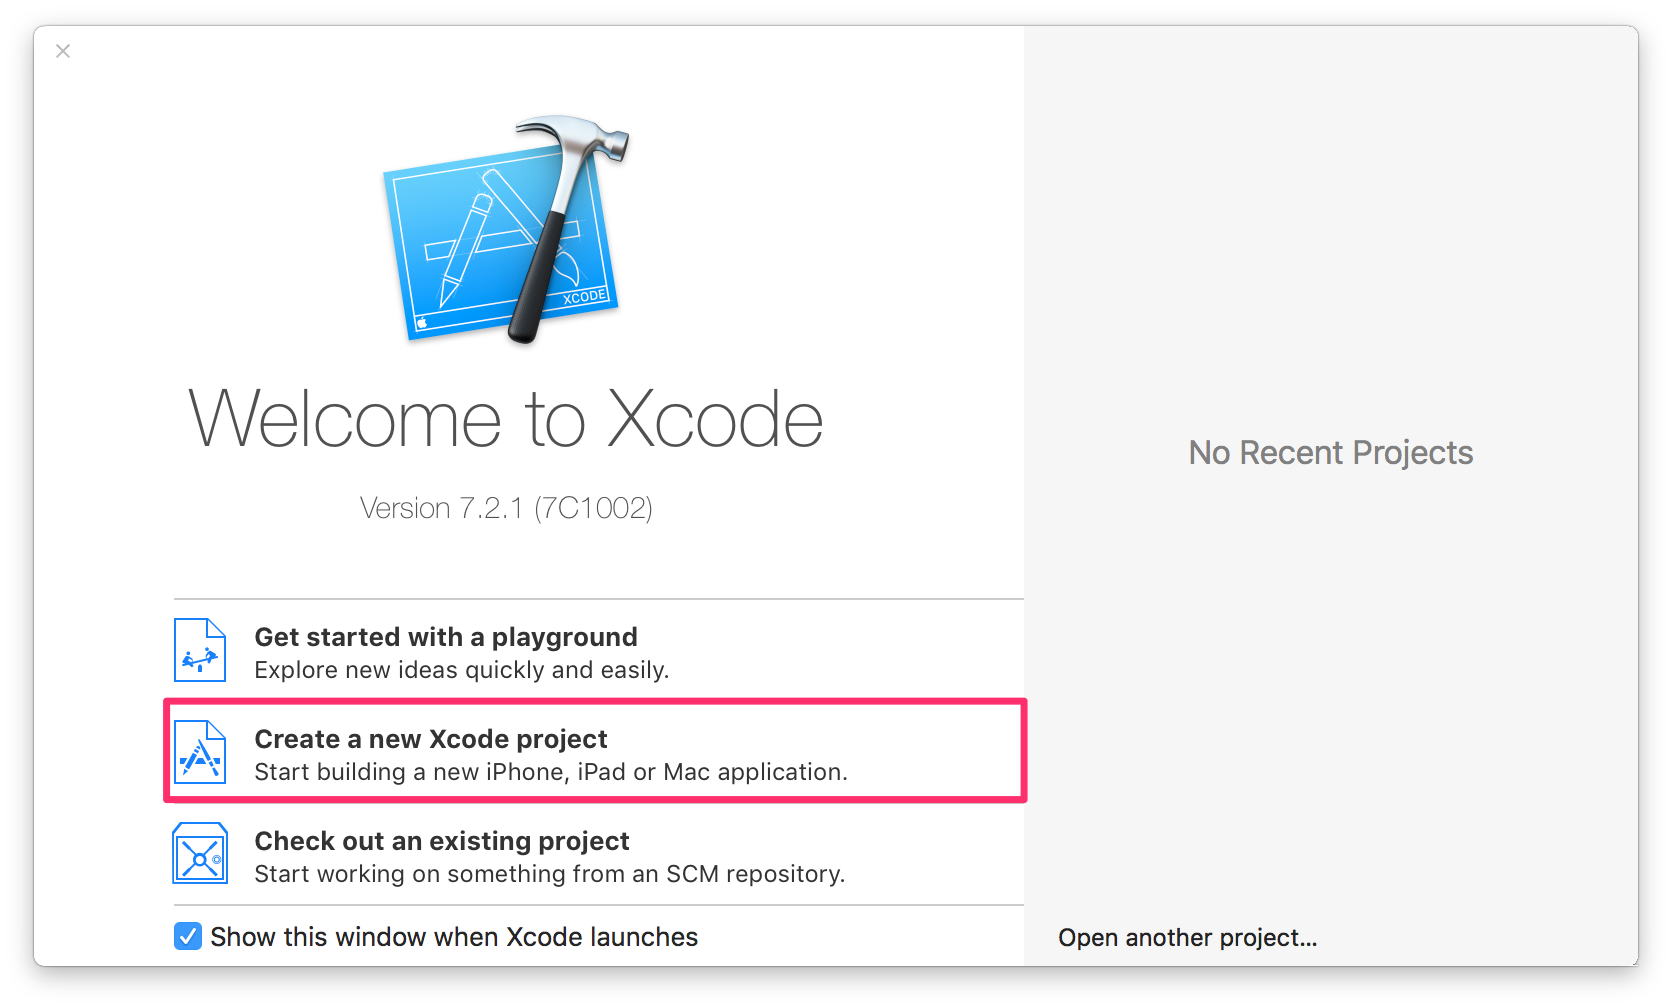 Welcome window in Xcode